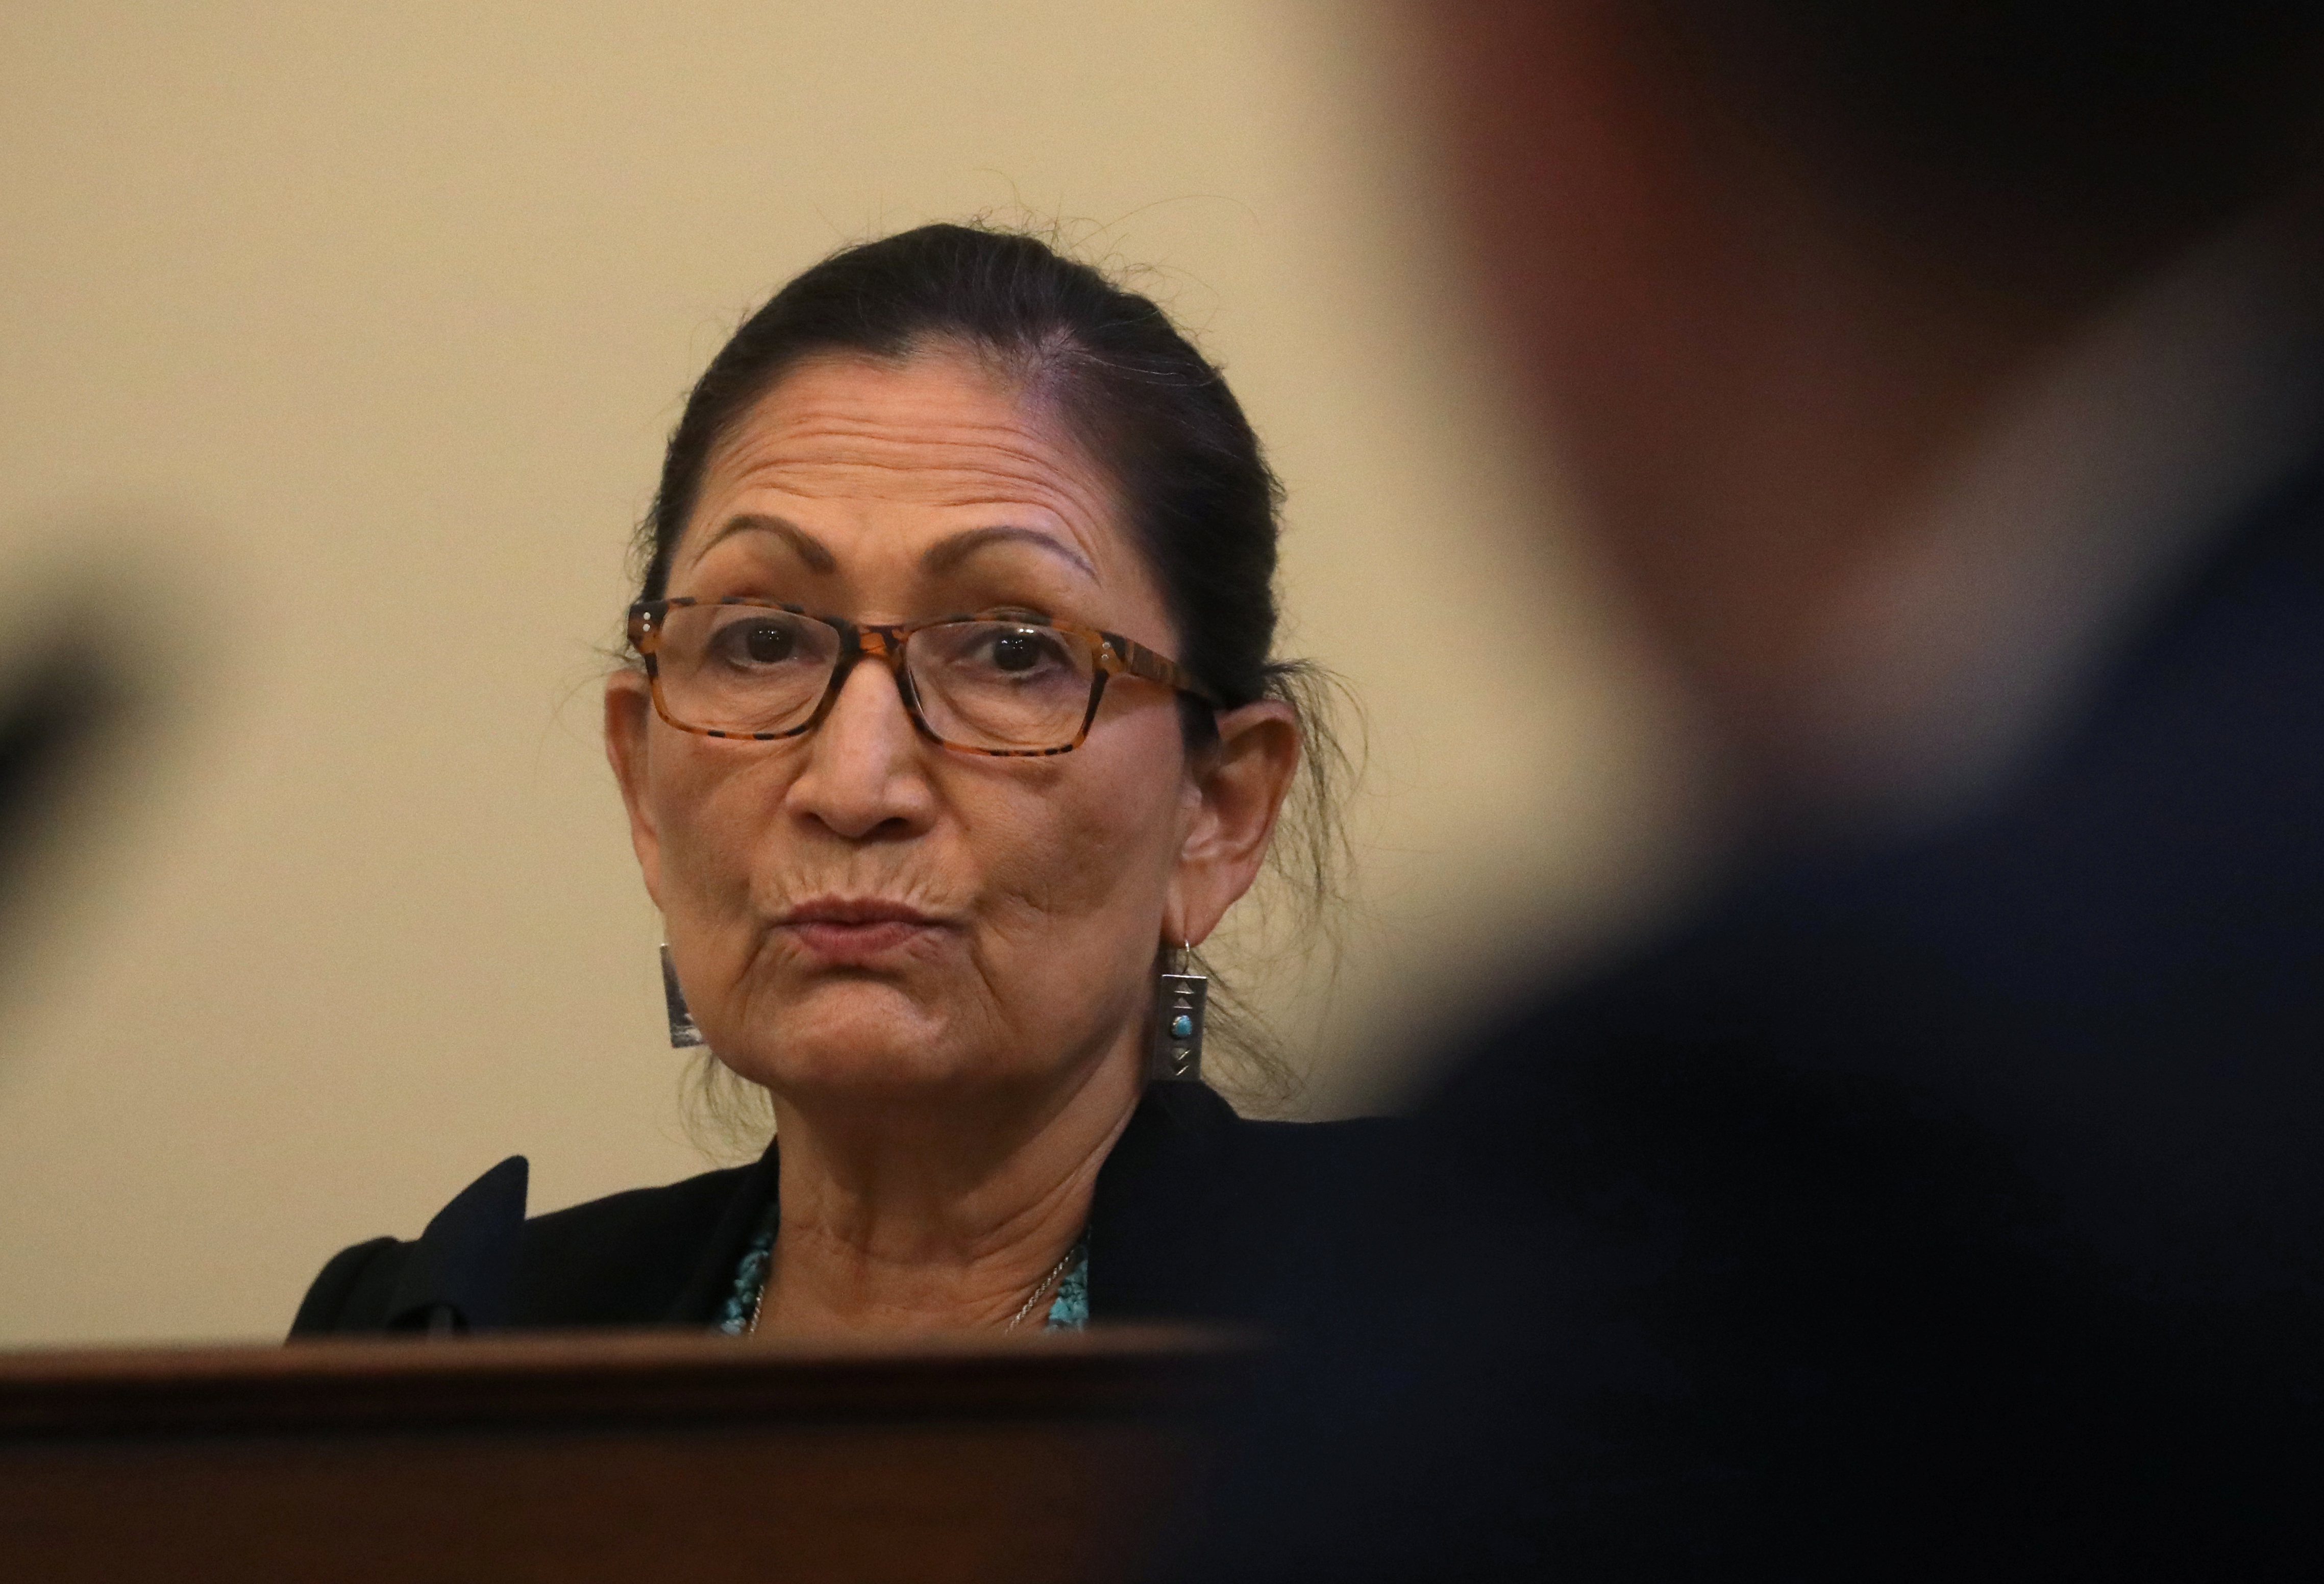 U.S. Rep. Deb Haaland (D-NM) questions Major Adam DeMarco of the District of Columbia National Guard as he testifies about the June 1 confrontation with protesters at Lafayette Square near the White House during a House Natural Resources Committee hearing on Capitol Hill in Washington, U.S., July 28, 2020. REUTERS/Leah Millis/Pool